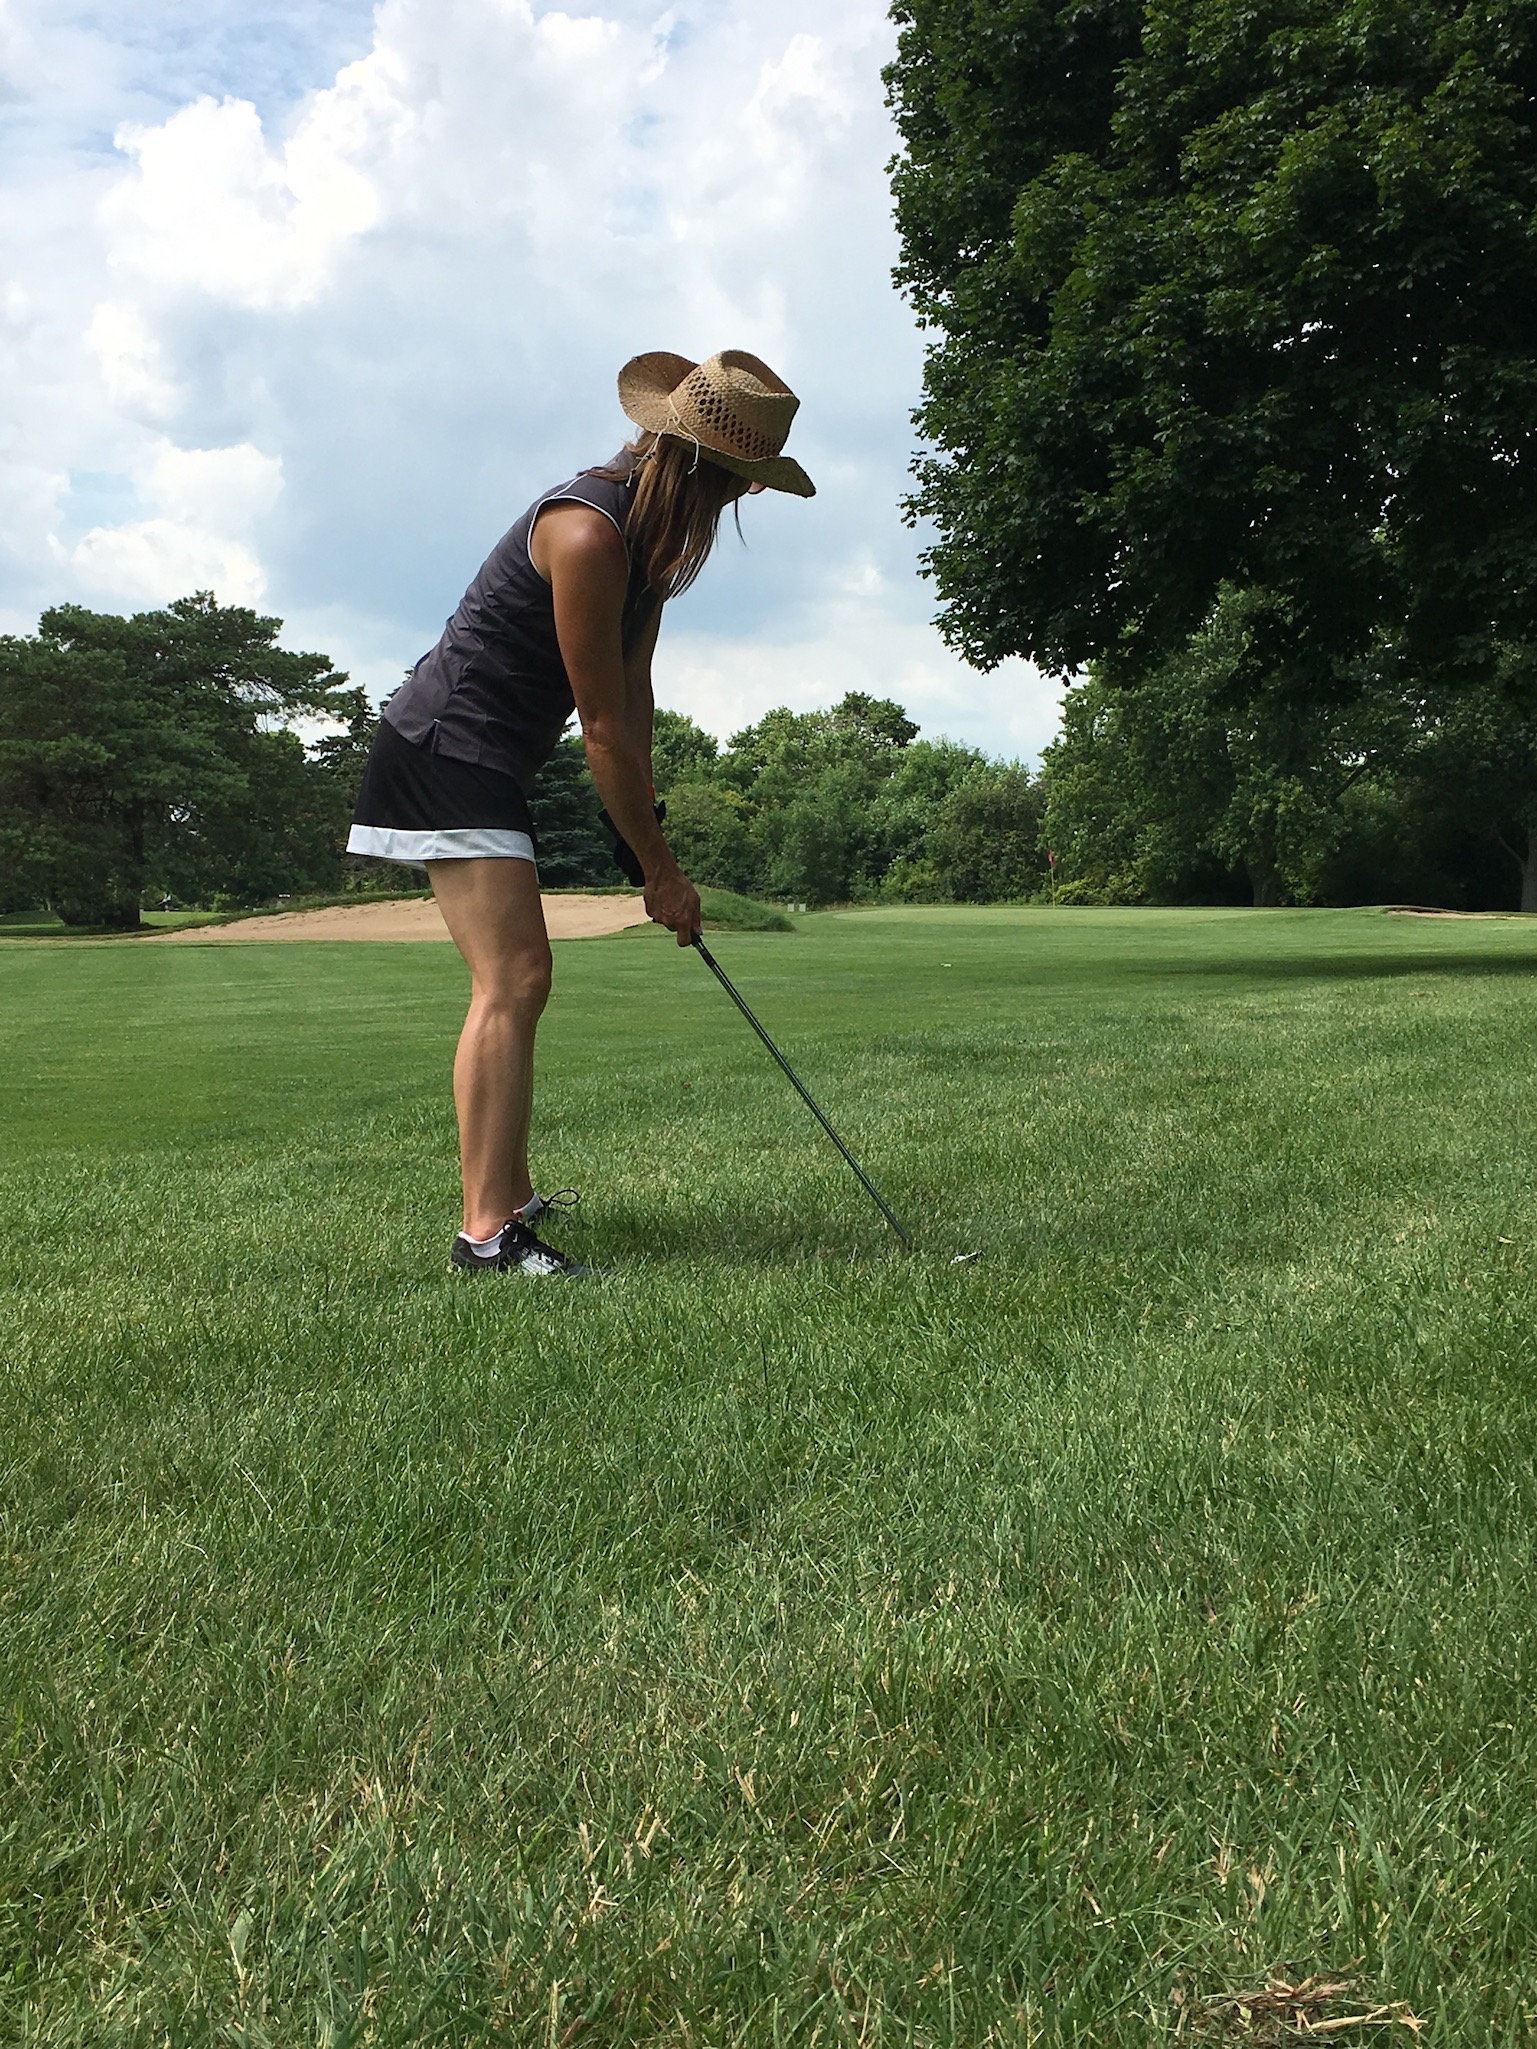 My dad insisted I learn to golf at any early age. So glad he did!